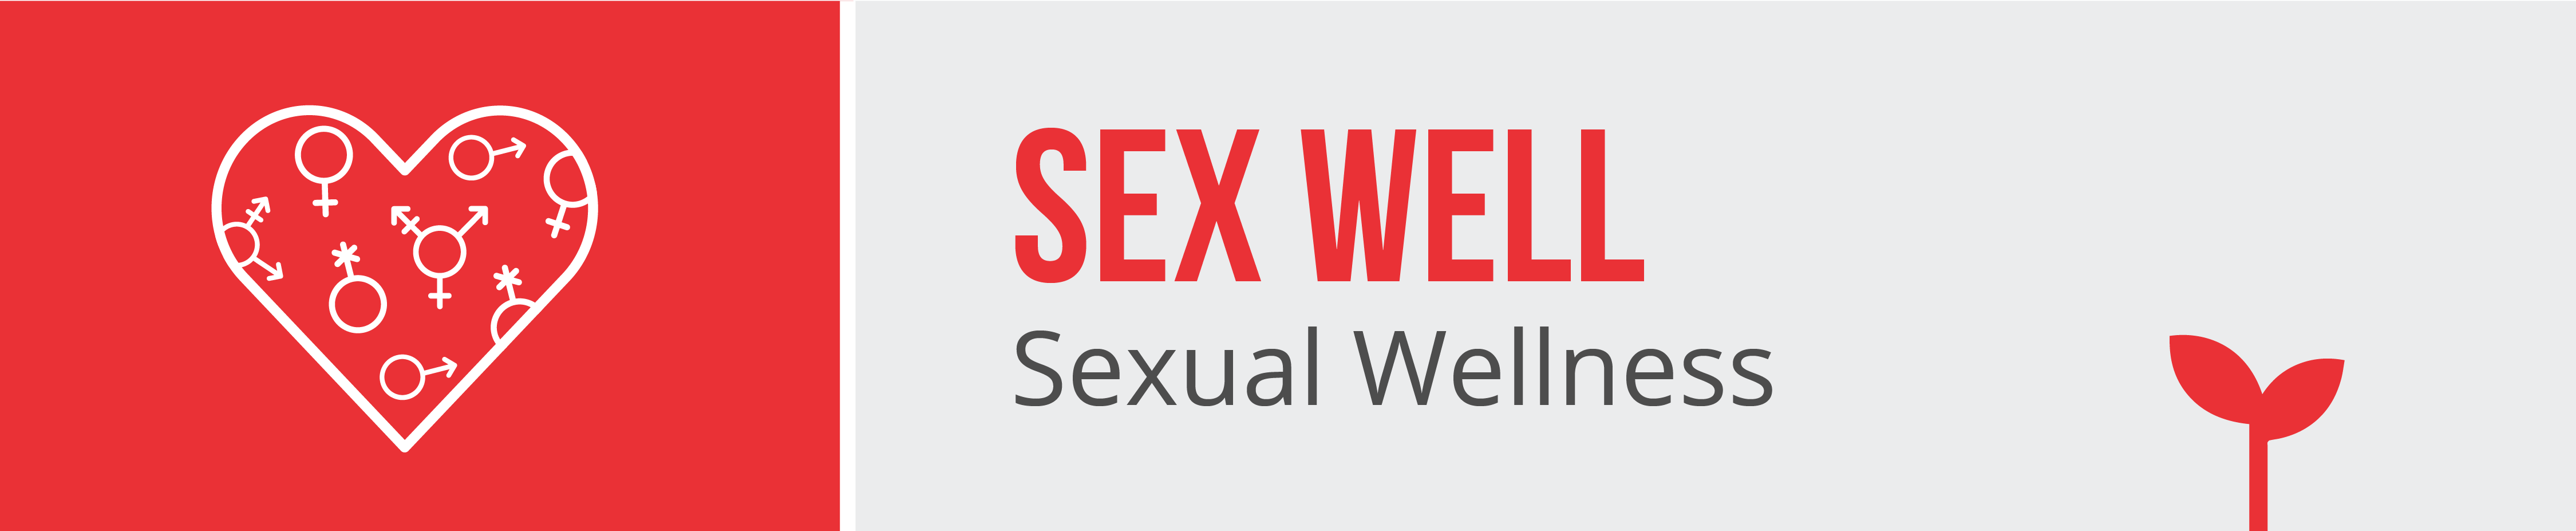 Sex_Well_Banner_2018.png